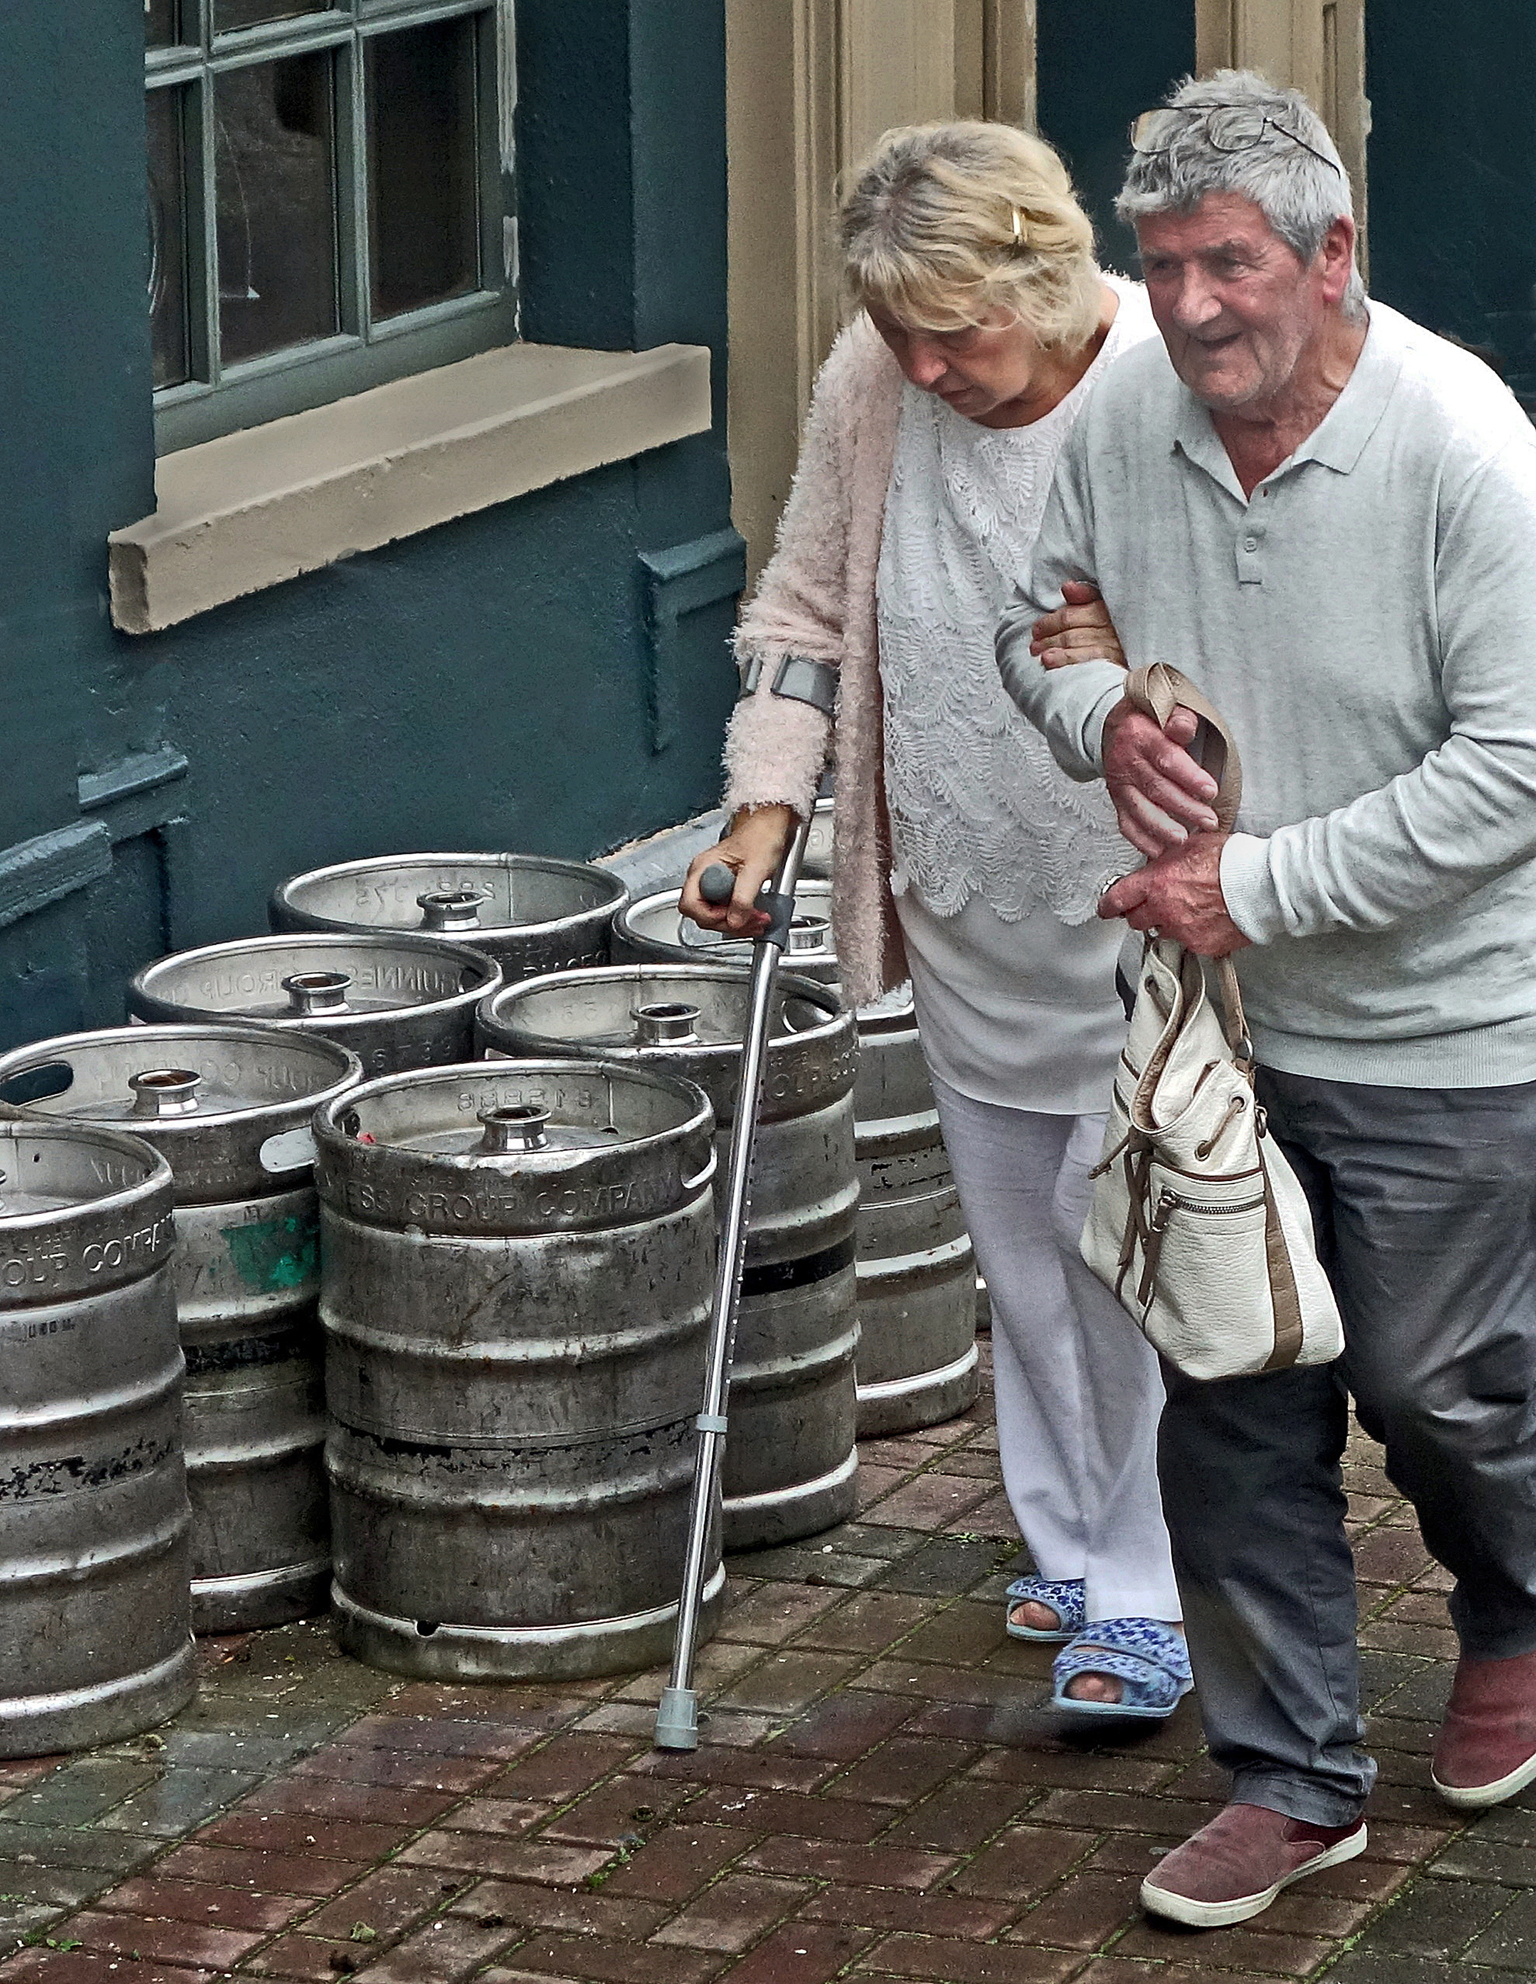 Jeff Heilbrun - Pensioners Passing the Pub